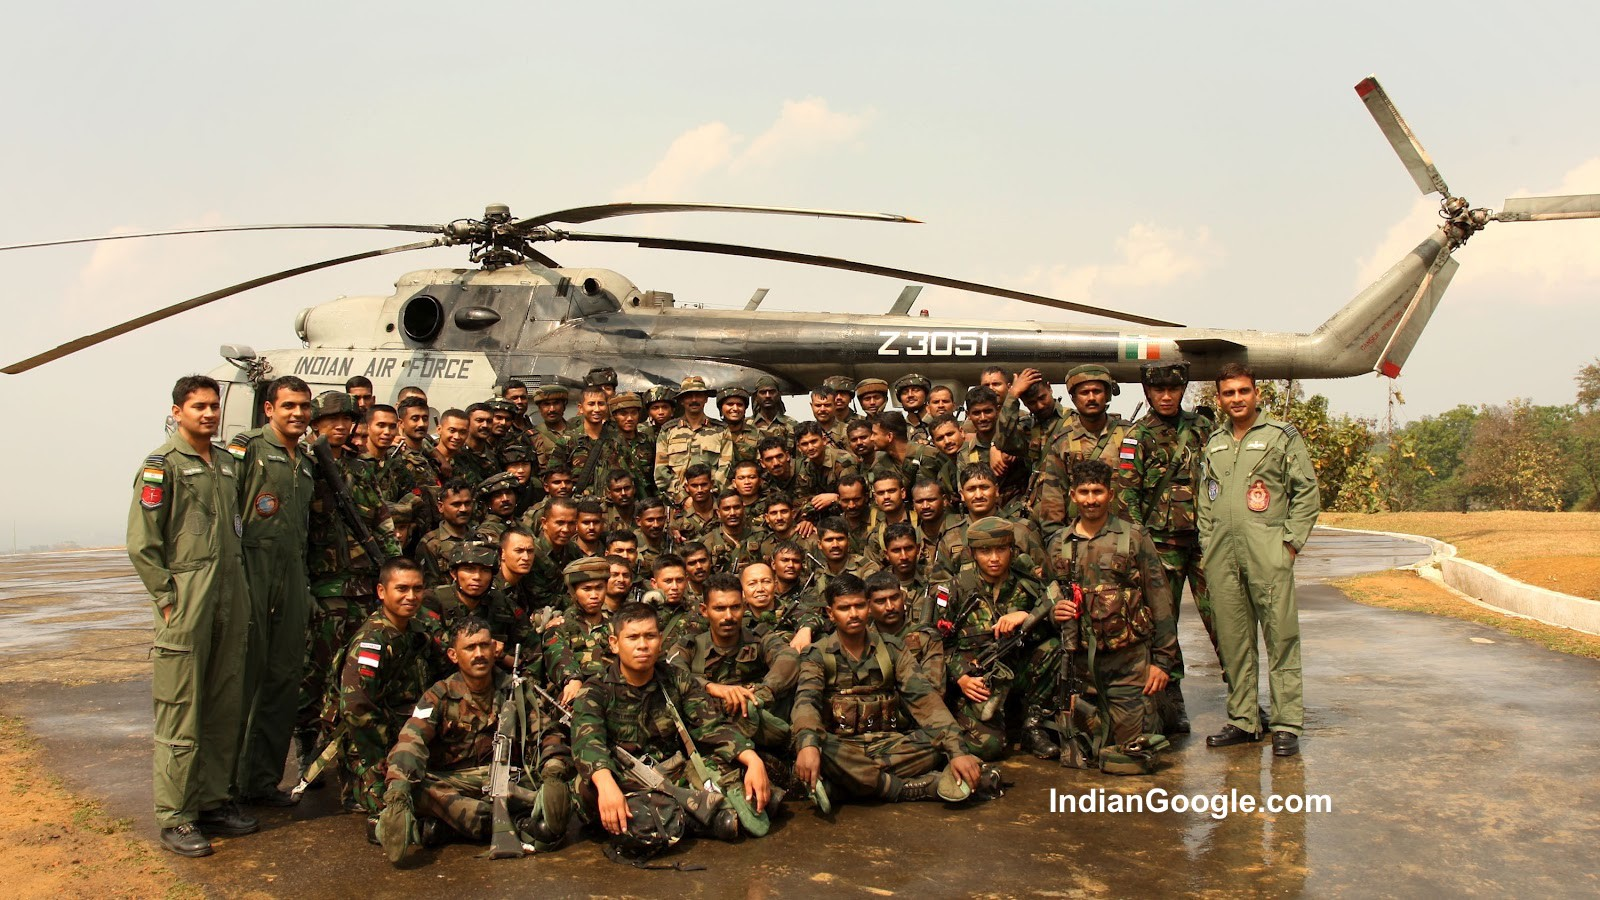 Hd wallpaper indian army - Indian Army Photo Albums